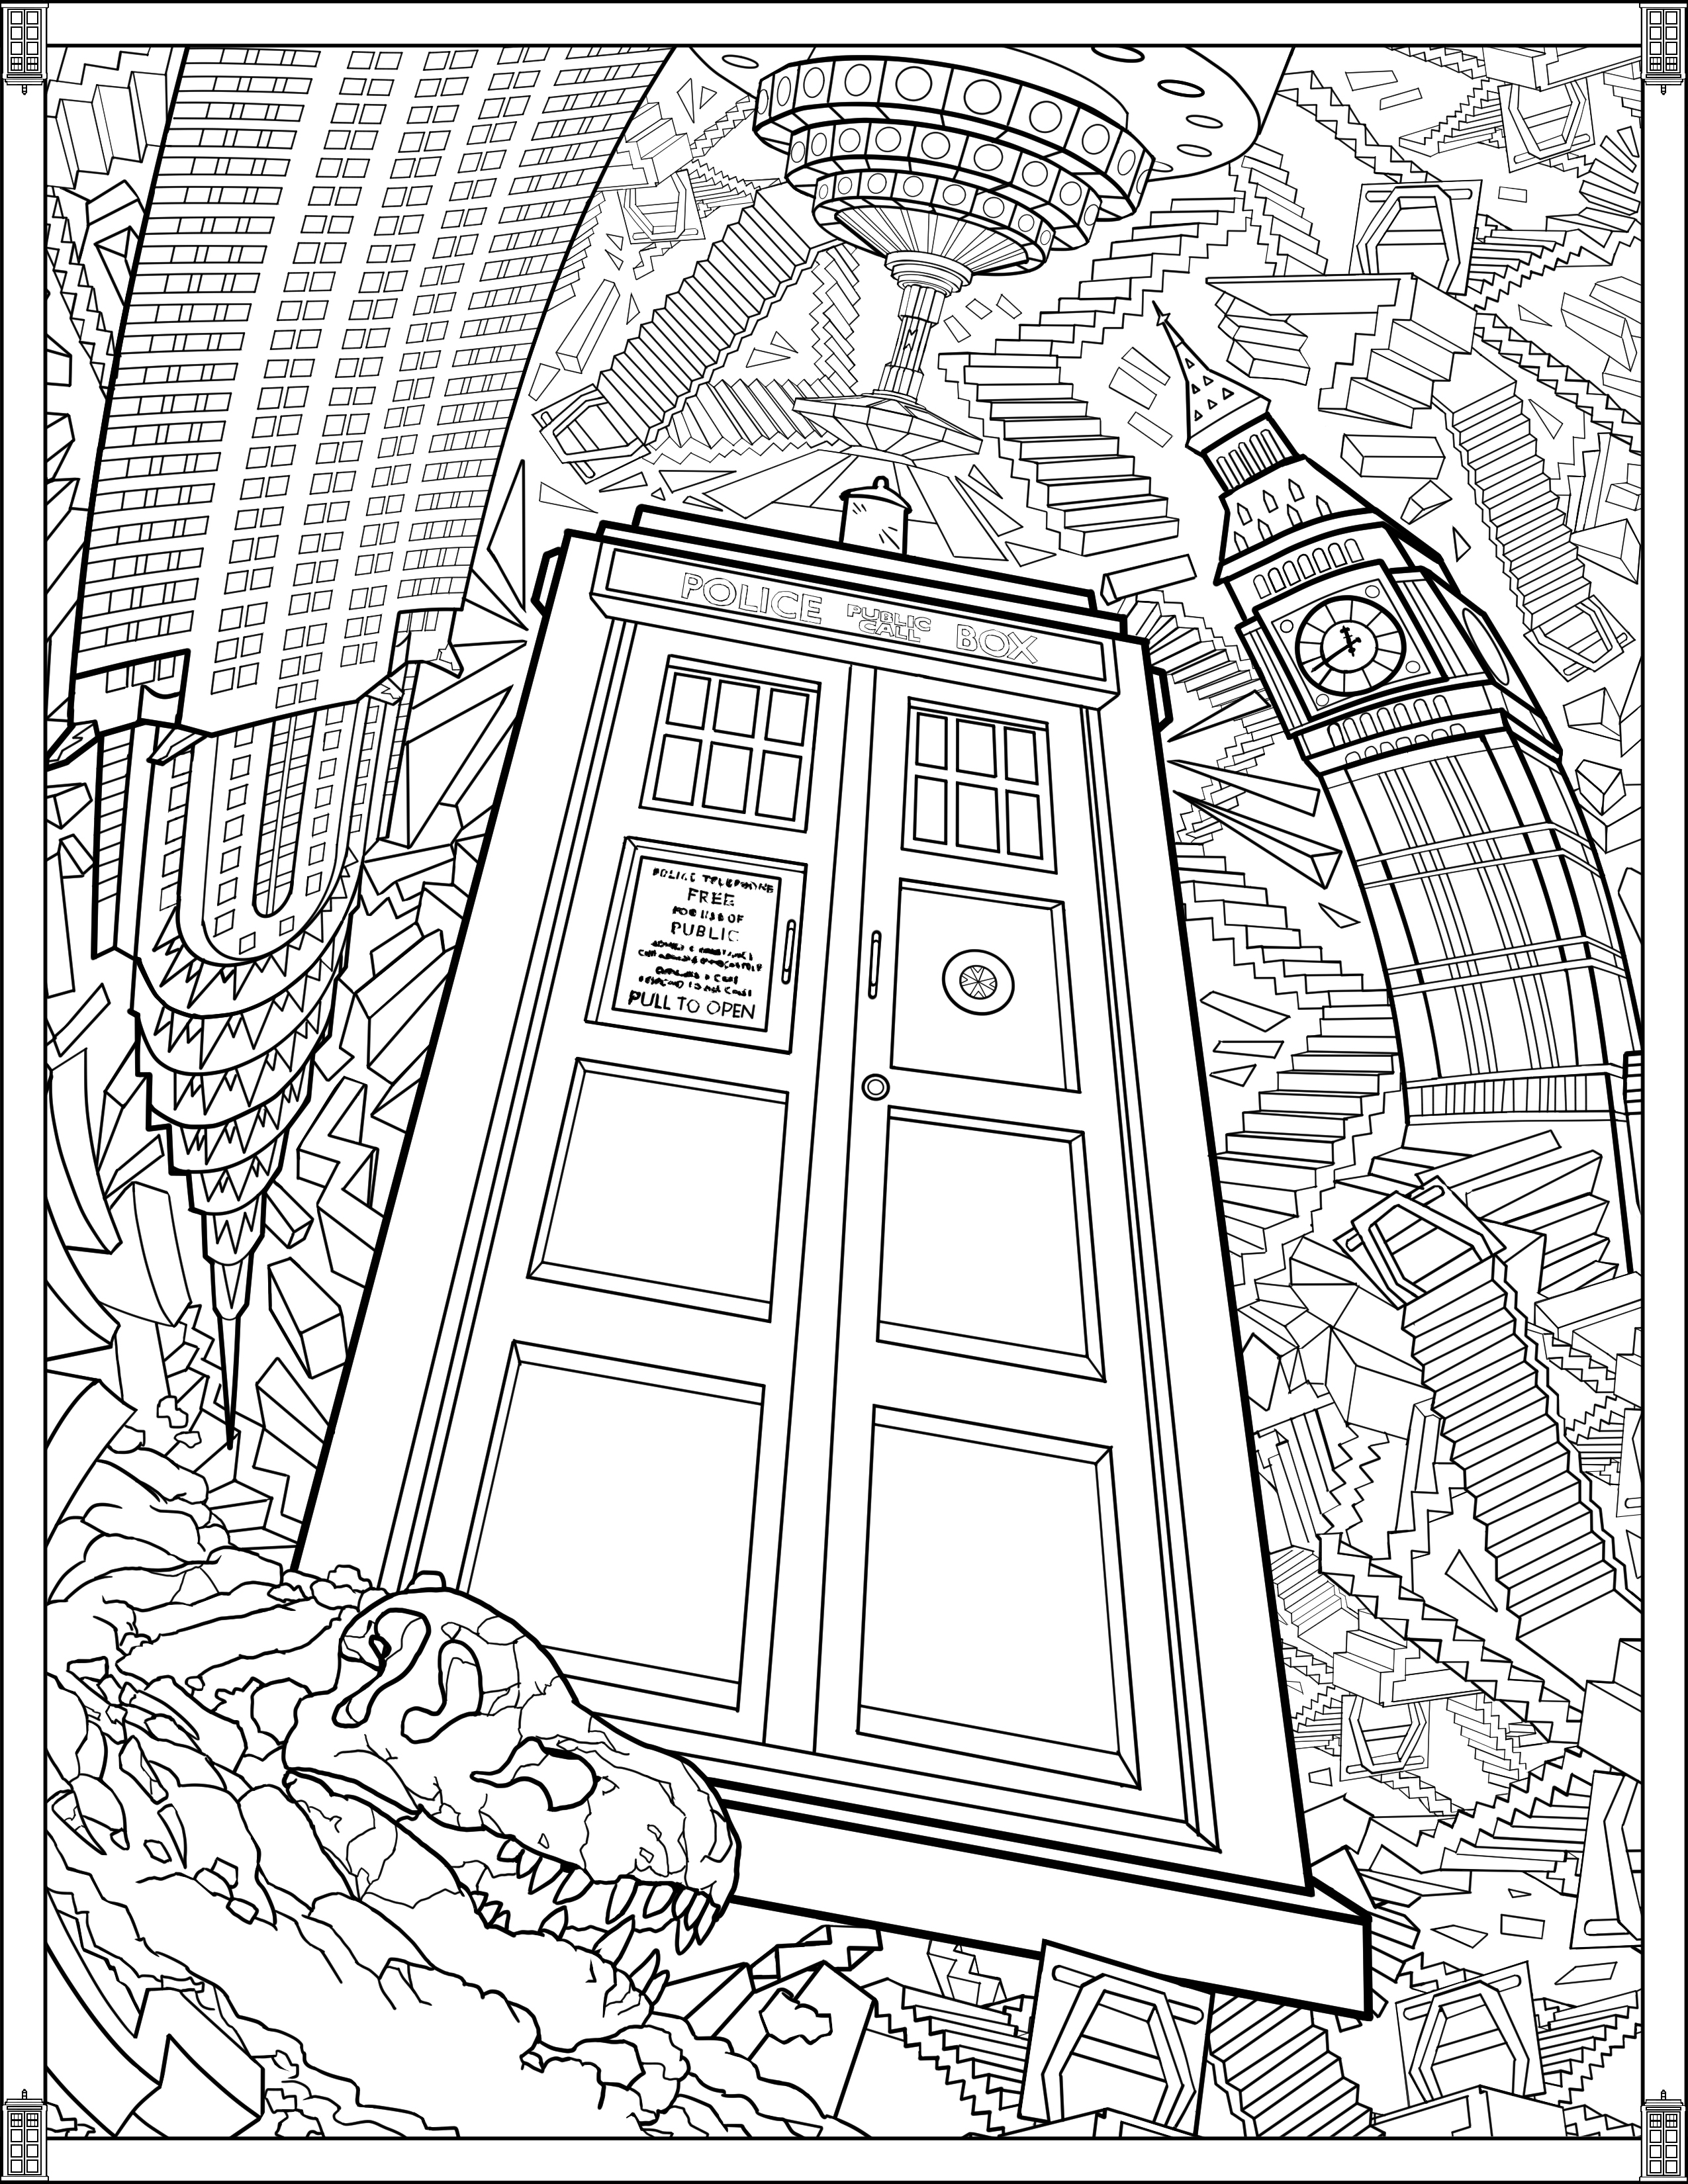 Doctor Who Wibbly Wobbly Timey Wimey Coloring Pages